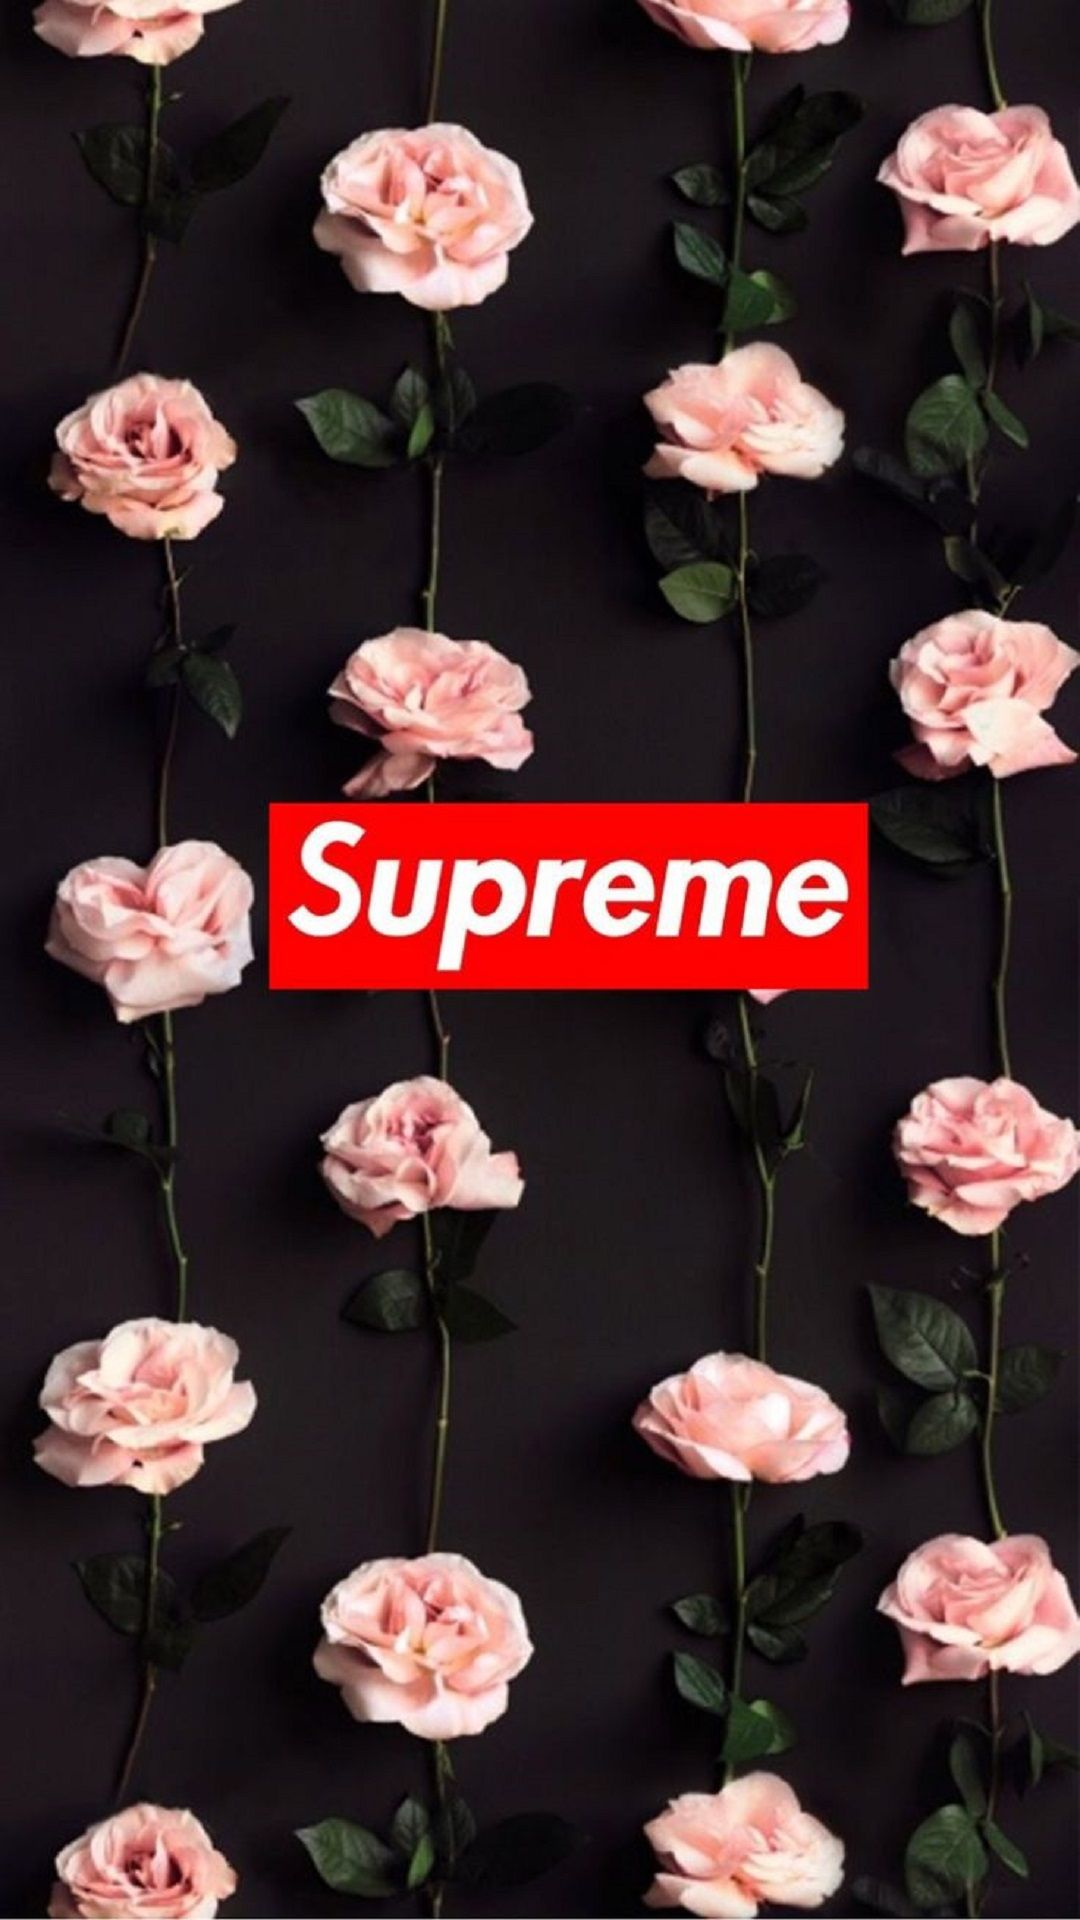 Supreme roses apple iphone 7 plus hd wallpapers available for free download